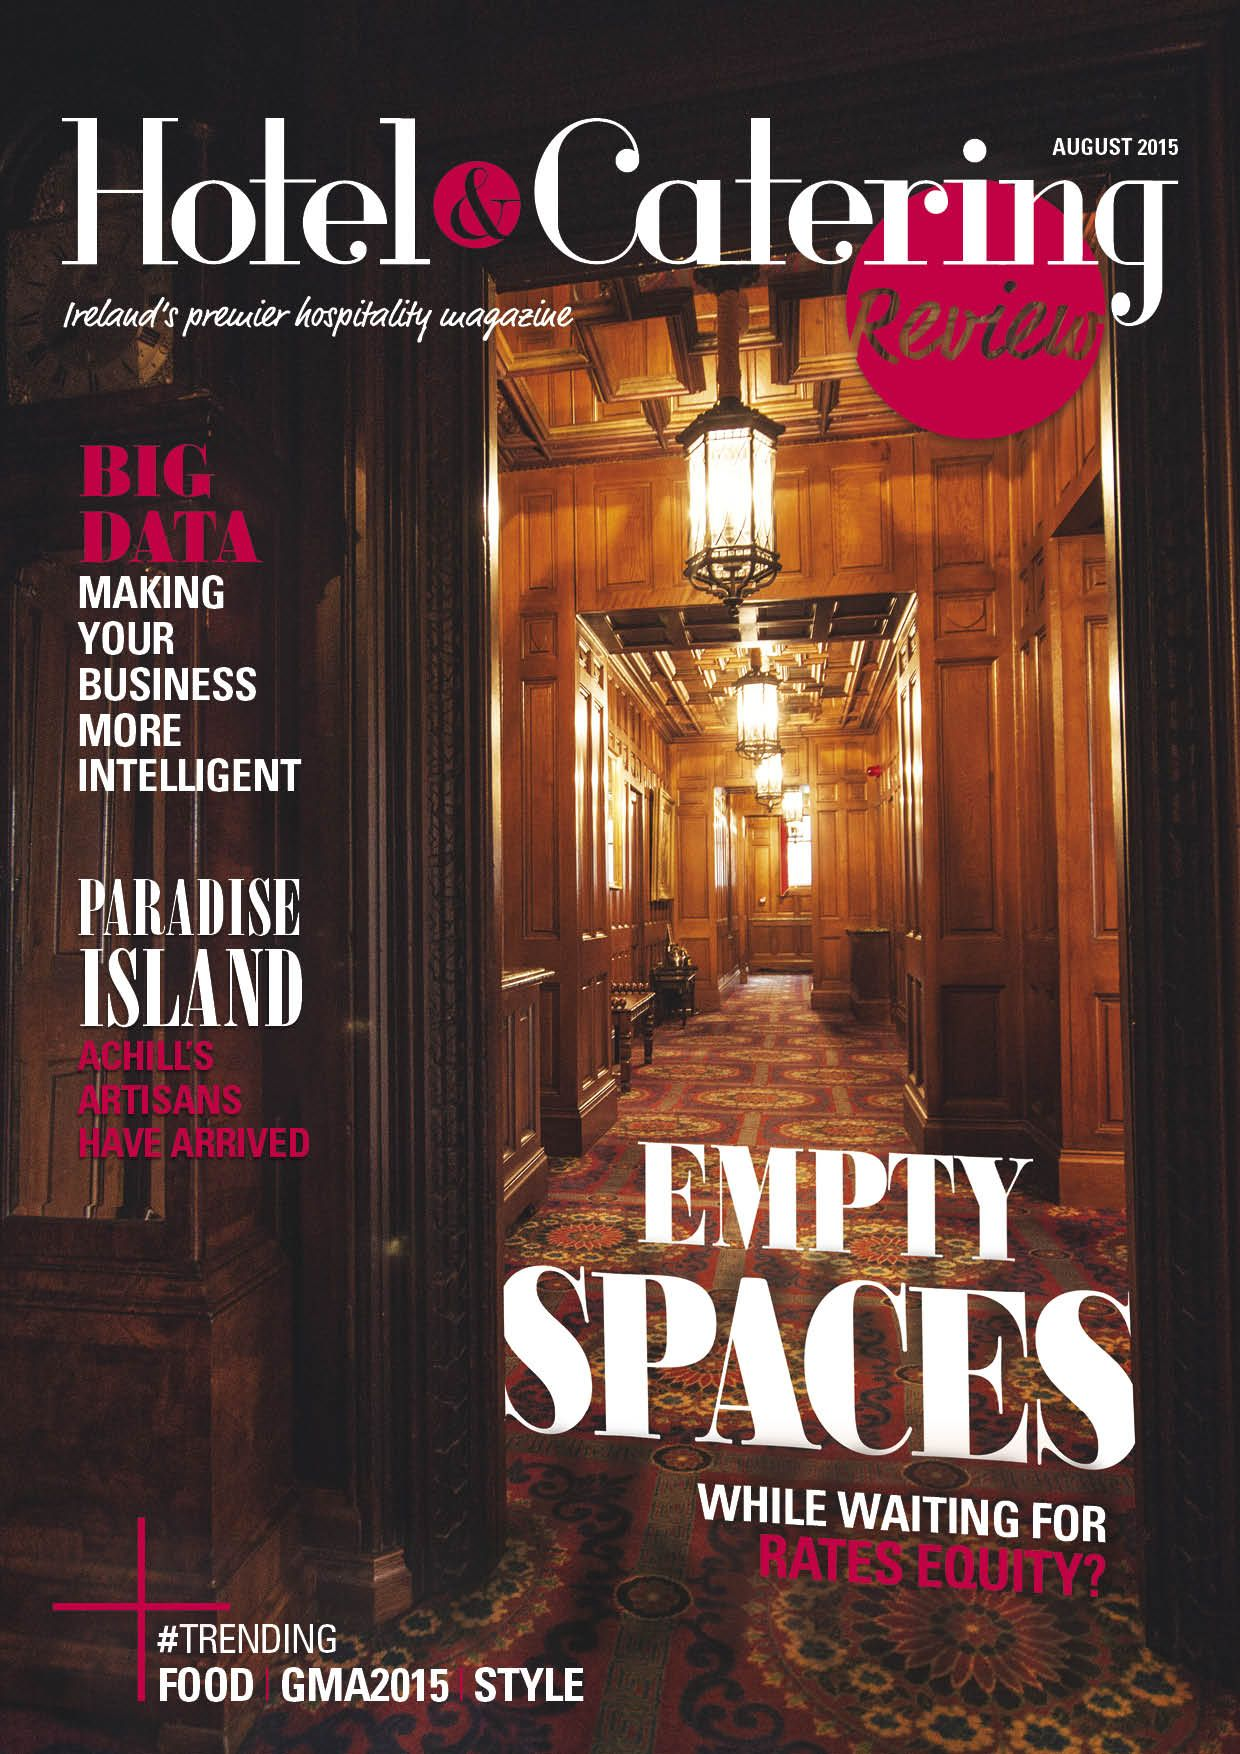 Hotel & Catering - August 2015 | Magazine Design // Covers